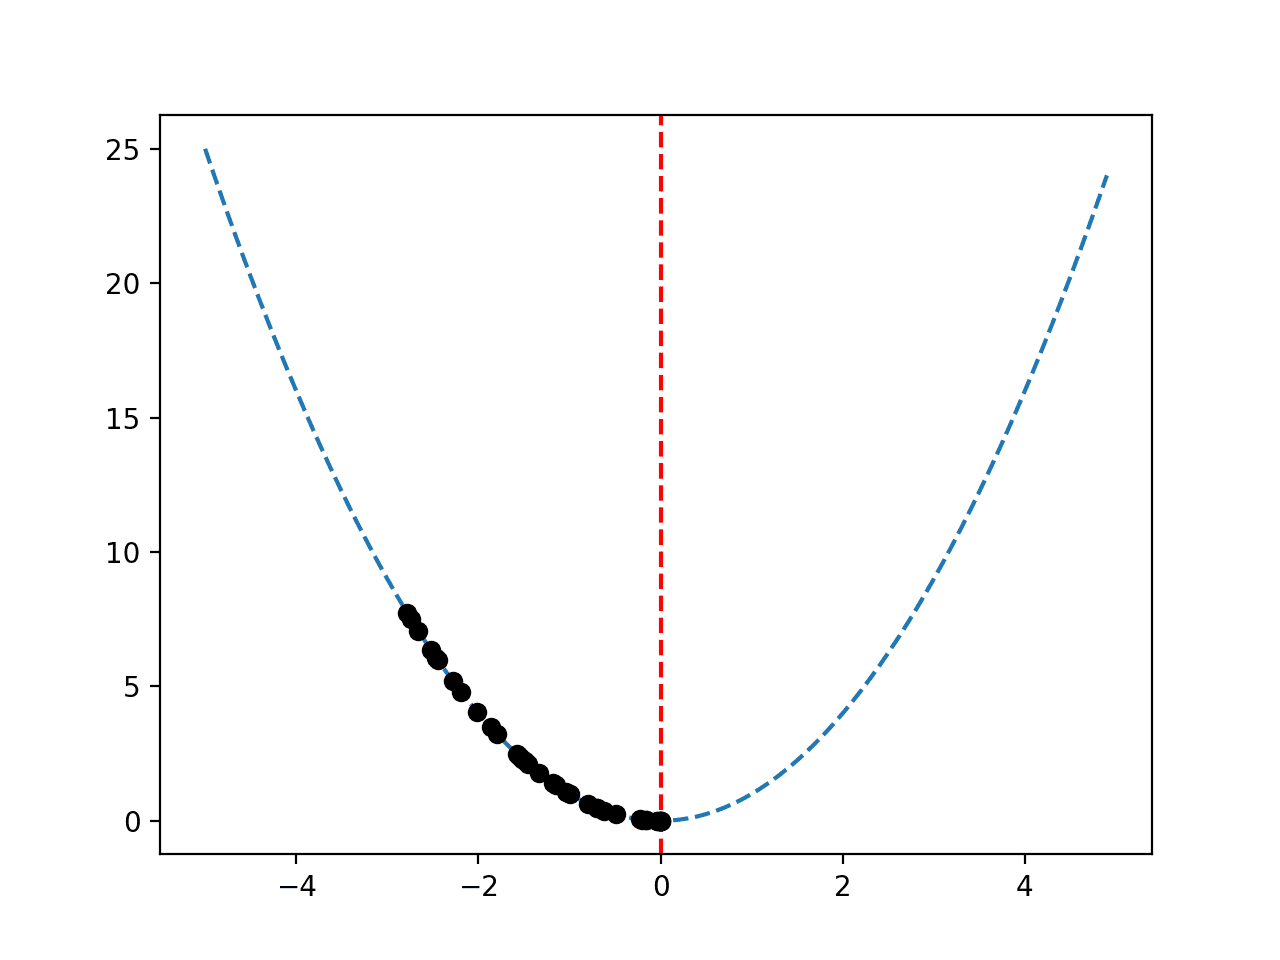 Response Surface of Objective Function With Sequence of Best Solutions Plotted as Black Dots